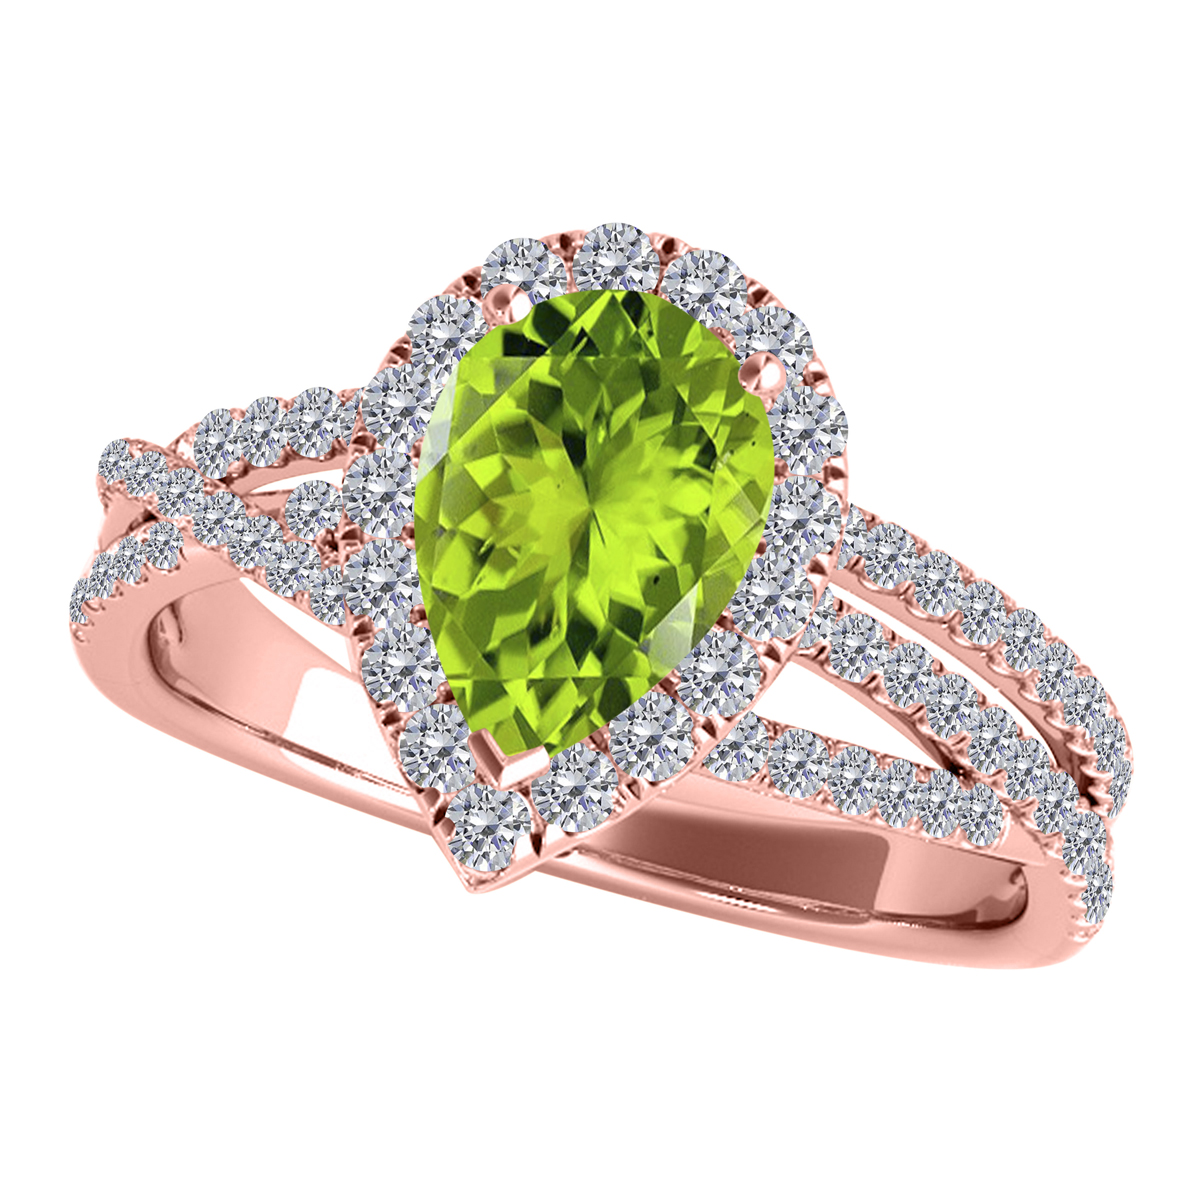 2.15 Carat Diamond and Pear Shaped Peridot Ringsets for girls or Women9 cushion-cut rose-gold 10K Rose Gold 4-prong this is the lovely gift for anniversary